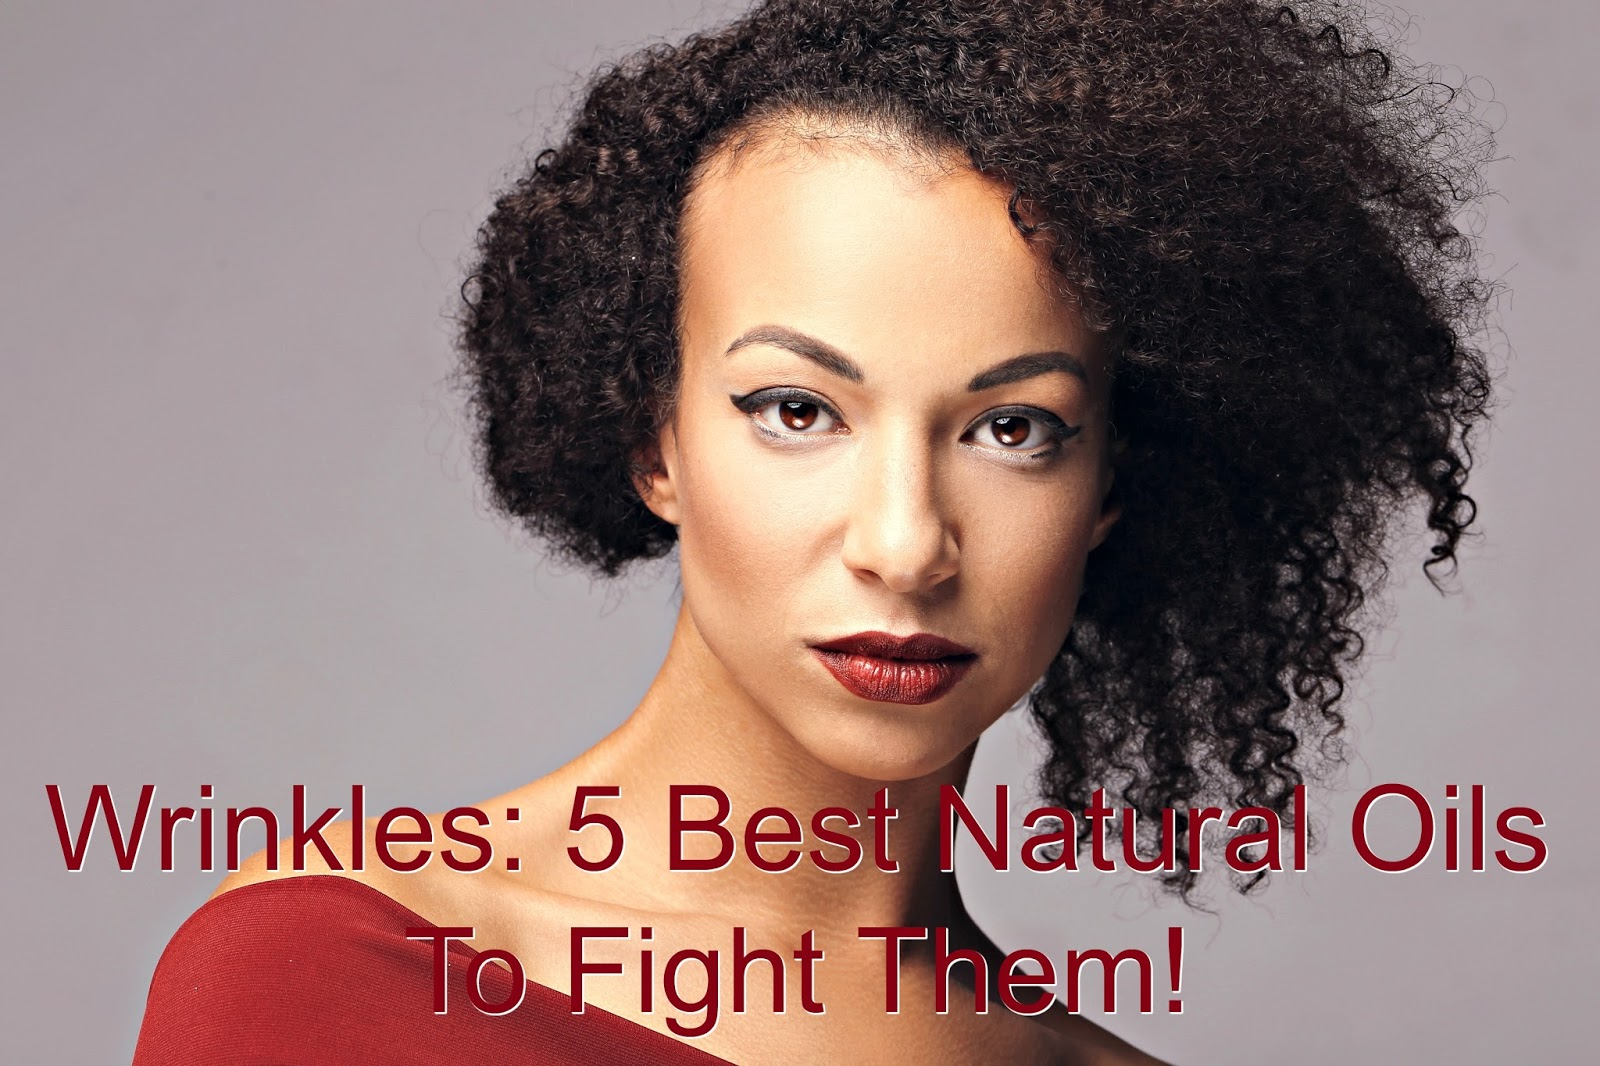 Here are five of the best natural oils to fight wrinkles whether you 25 or 45. Whether you are black or brown we still have to worry about aging.